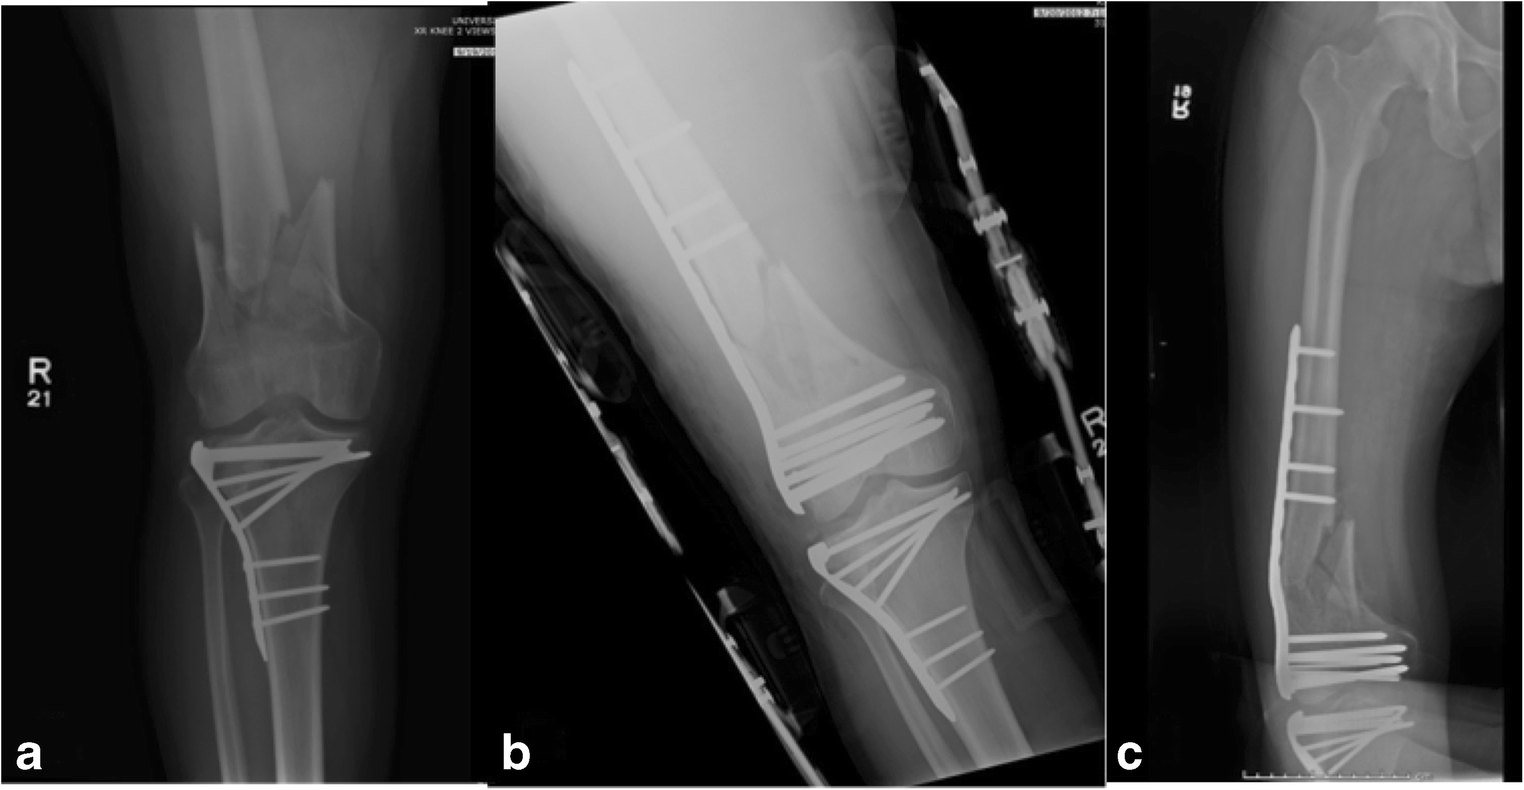 Outcomes of distal femur fractures treated with the Synthes